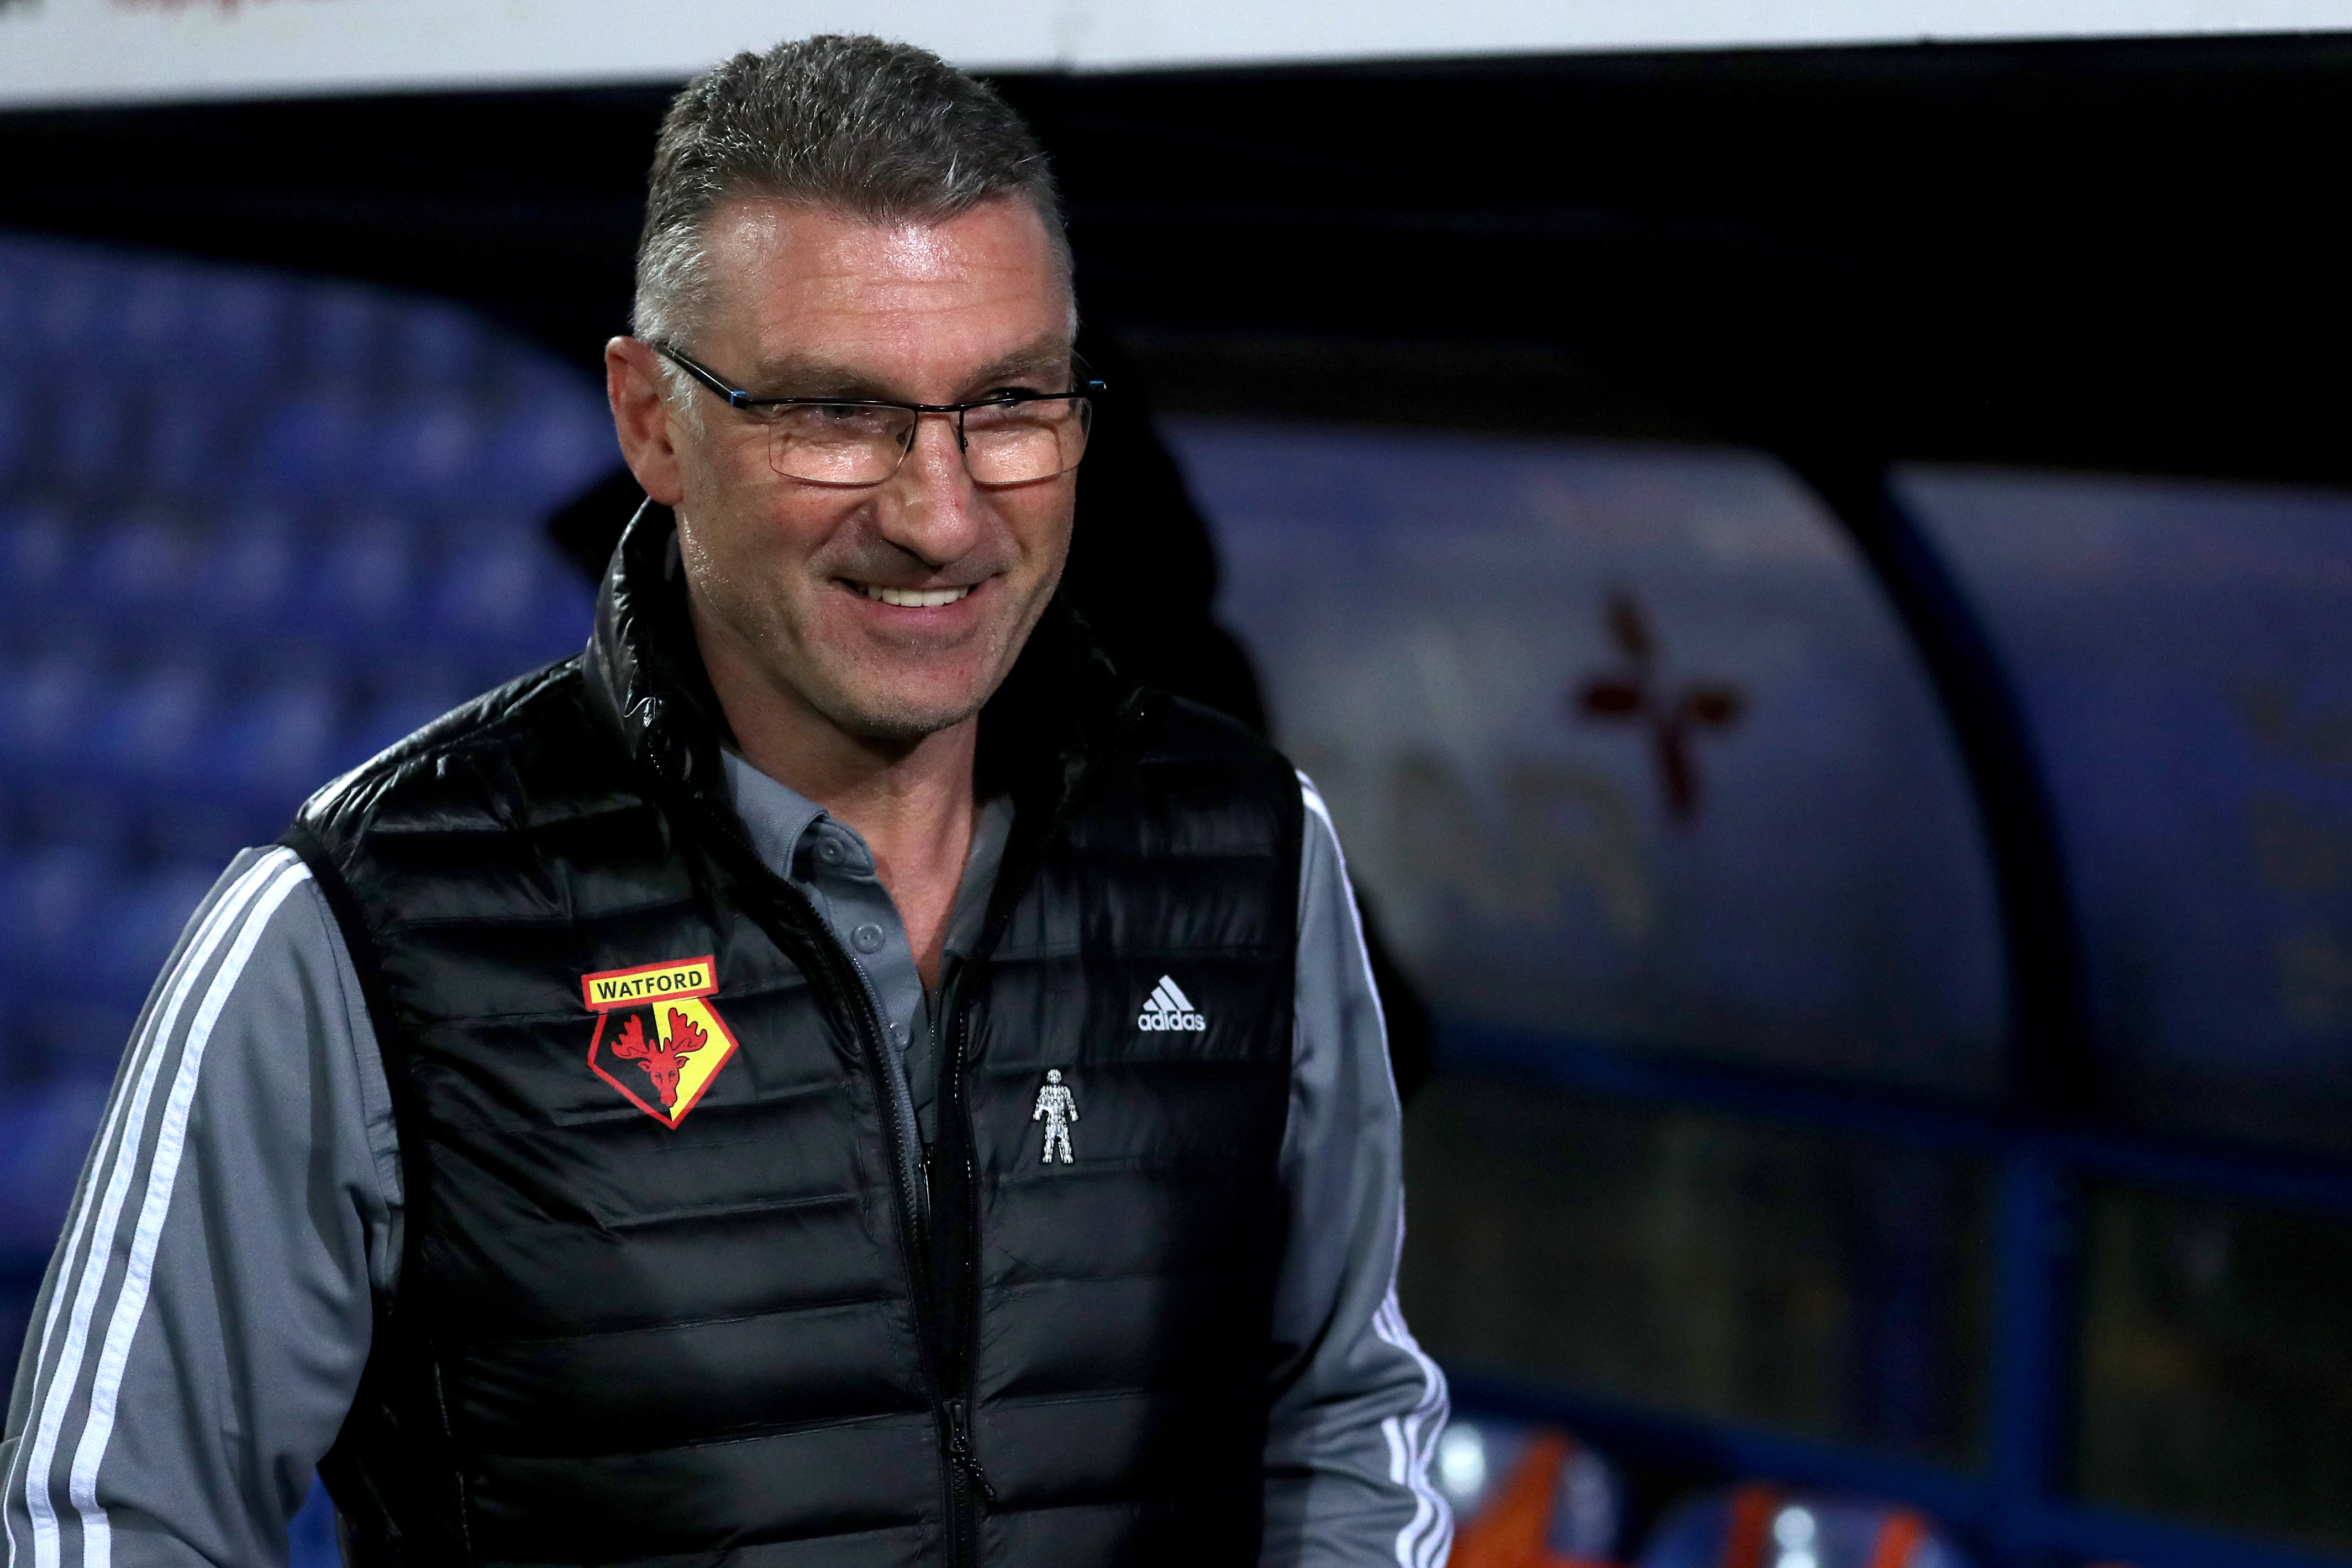 Watford manager Nigel Pearson before the FA Cup third round replay match at Prenton Park, Birkenhead.